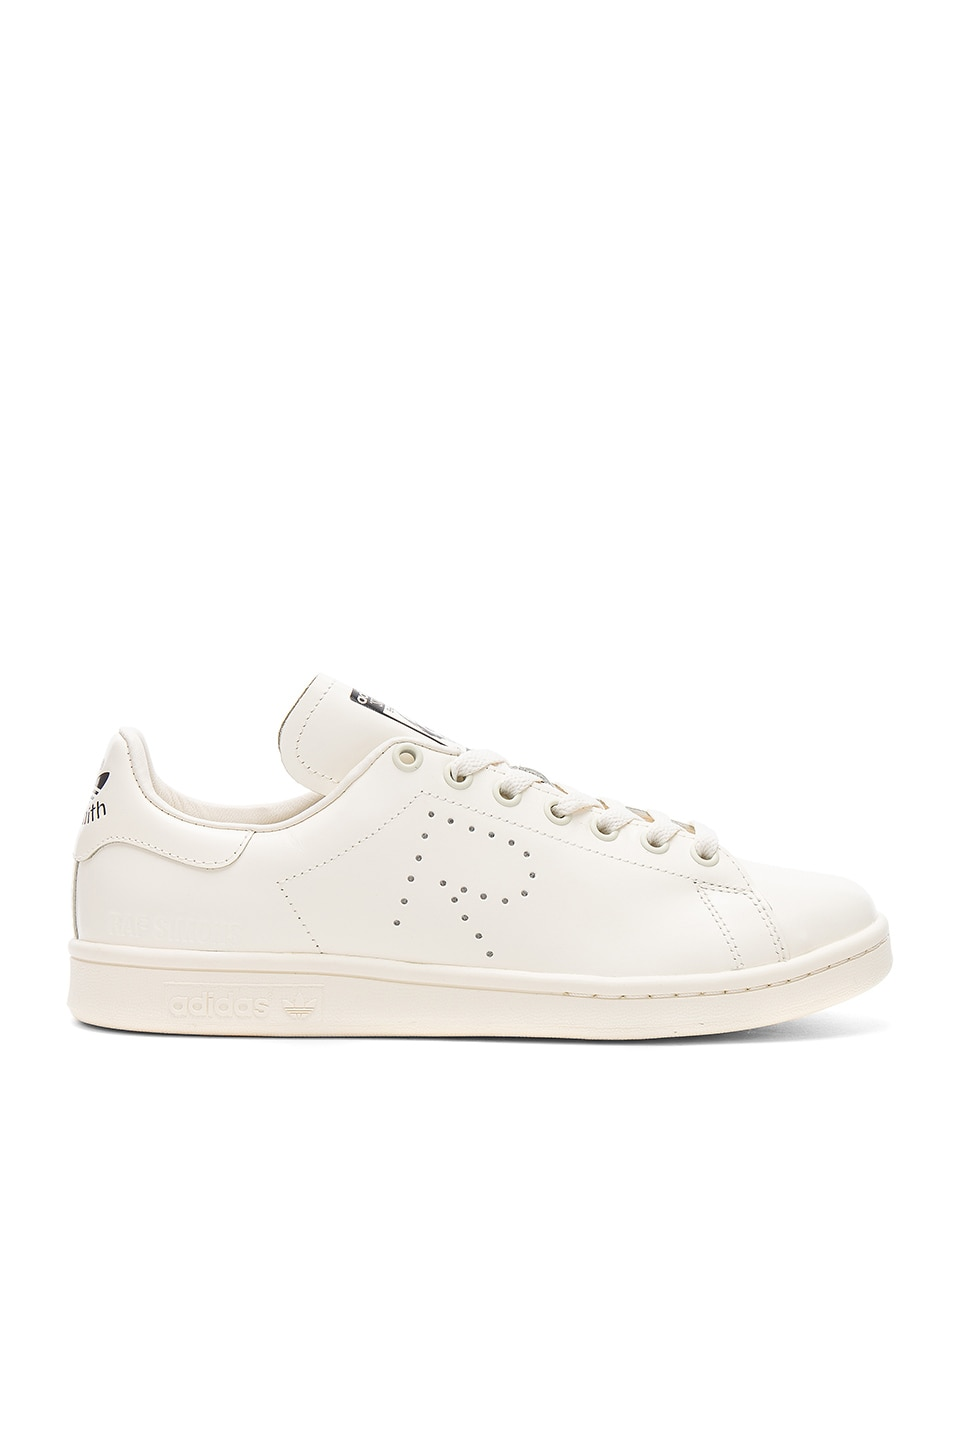 Stan Smith by adidas by Raf Simons